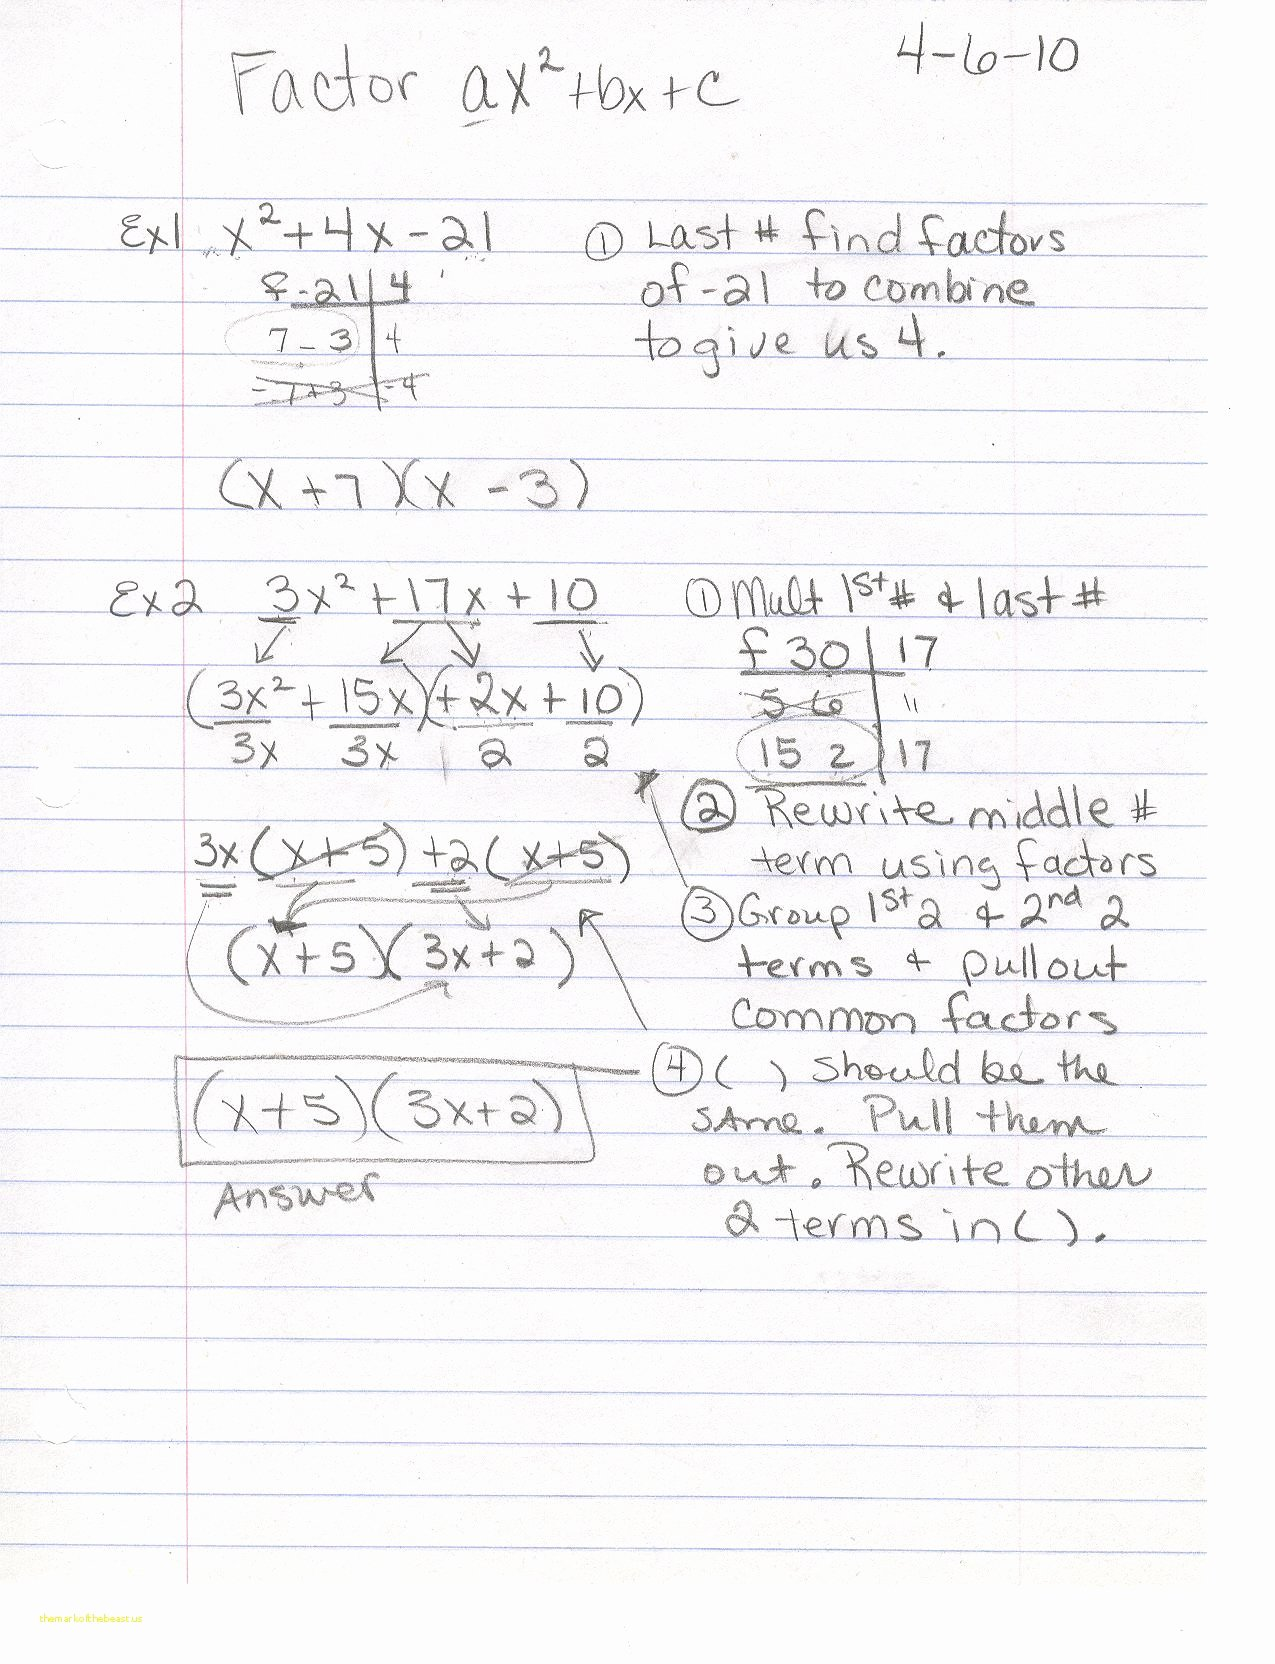 Factoring X2 Bx C Worksheet Awesome Factoring Ax2 Bx C Worksheet the Best Worksheets Image